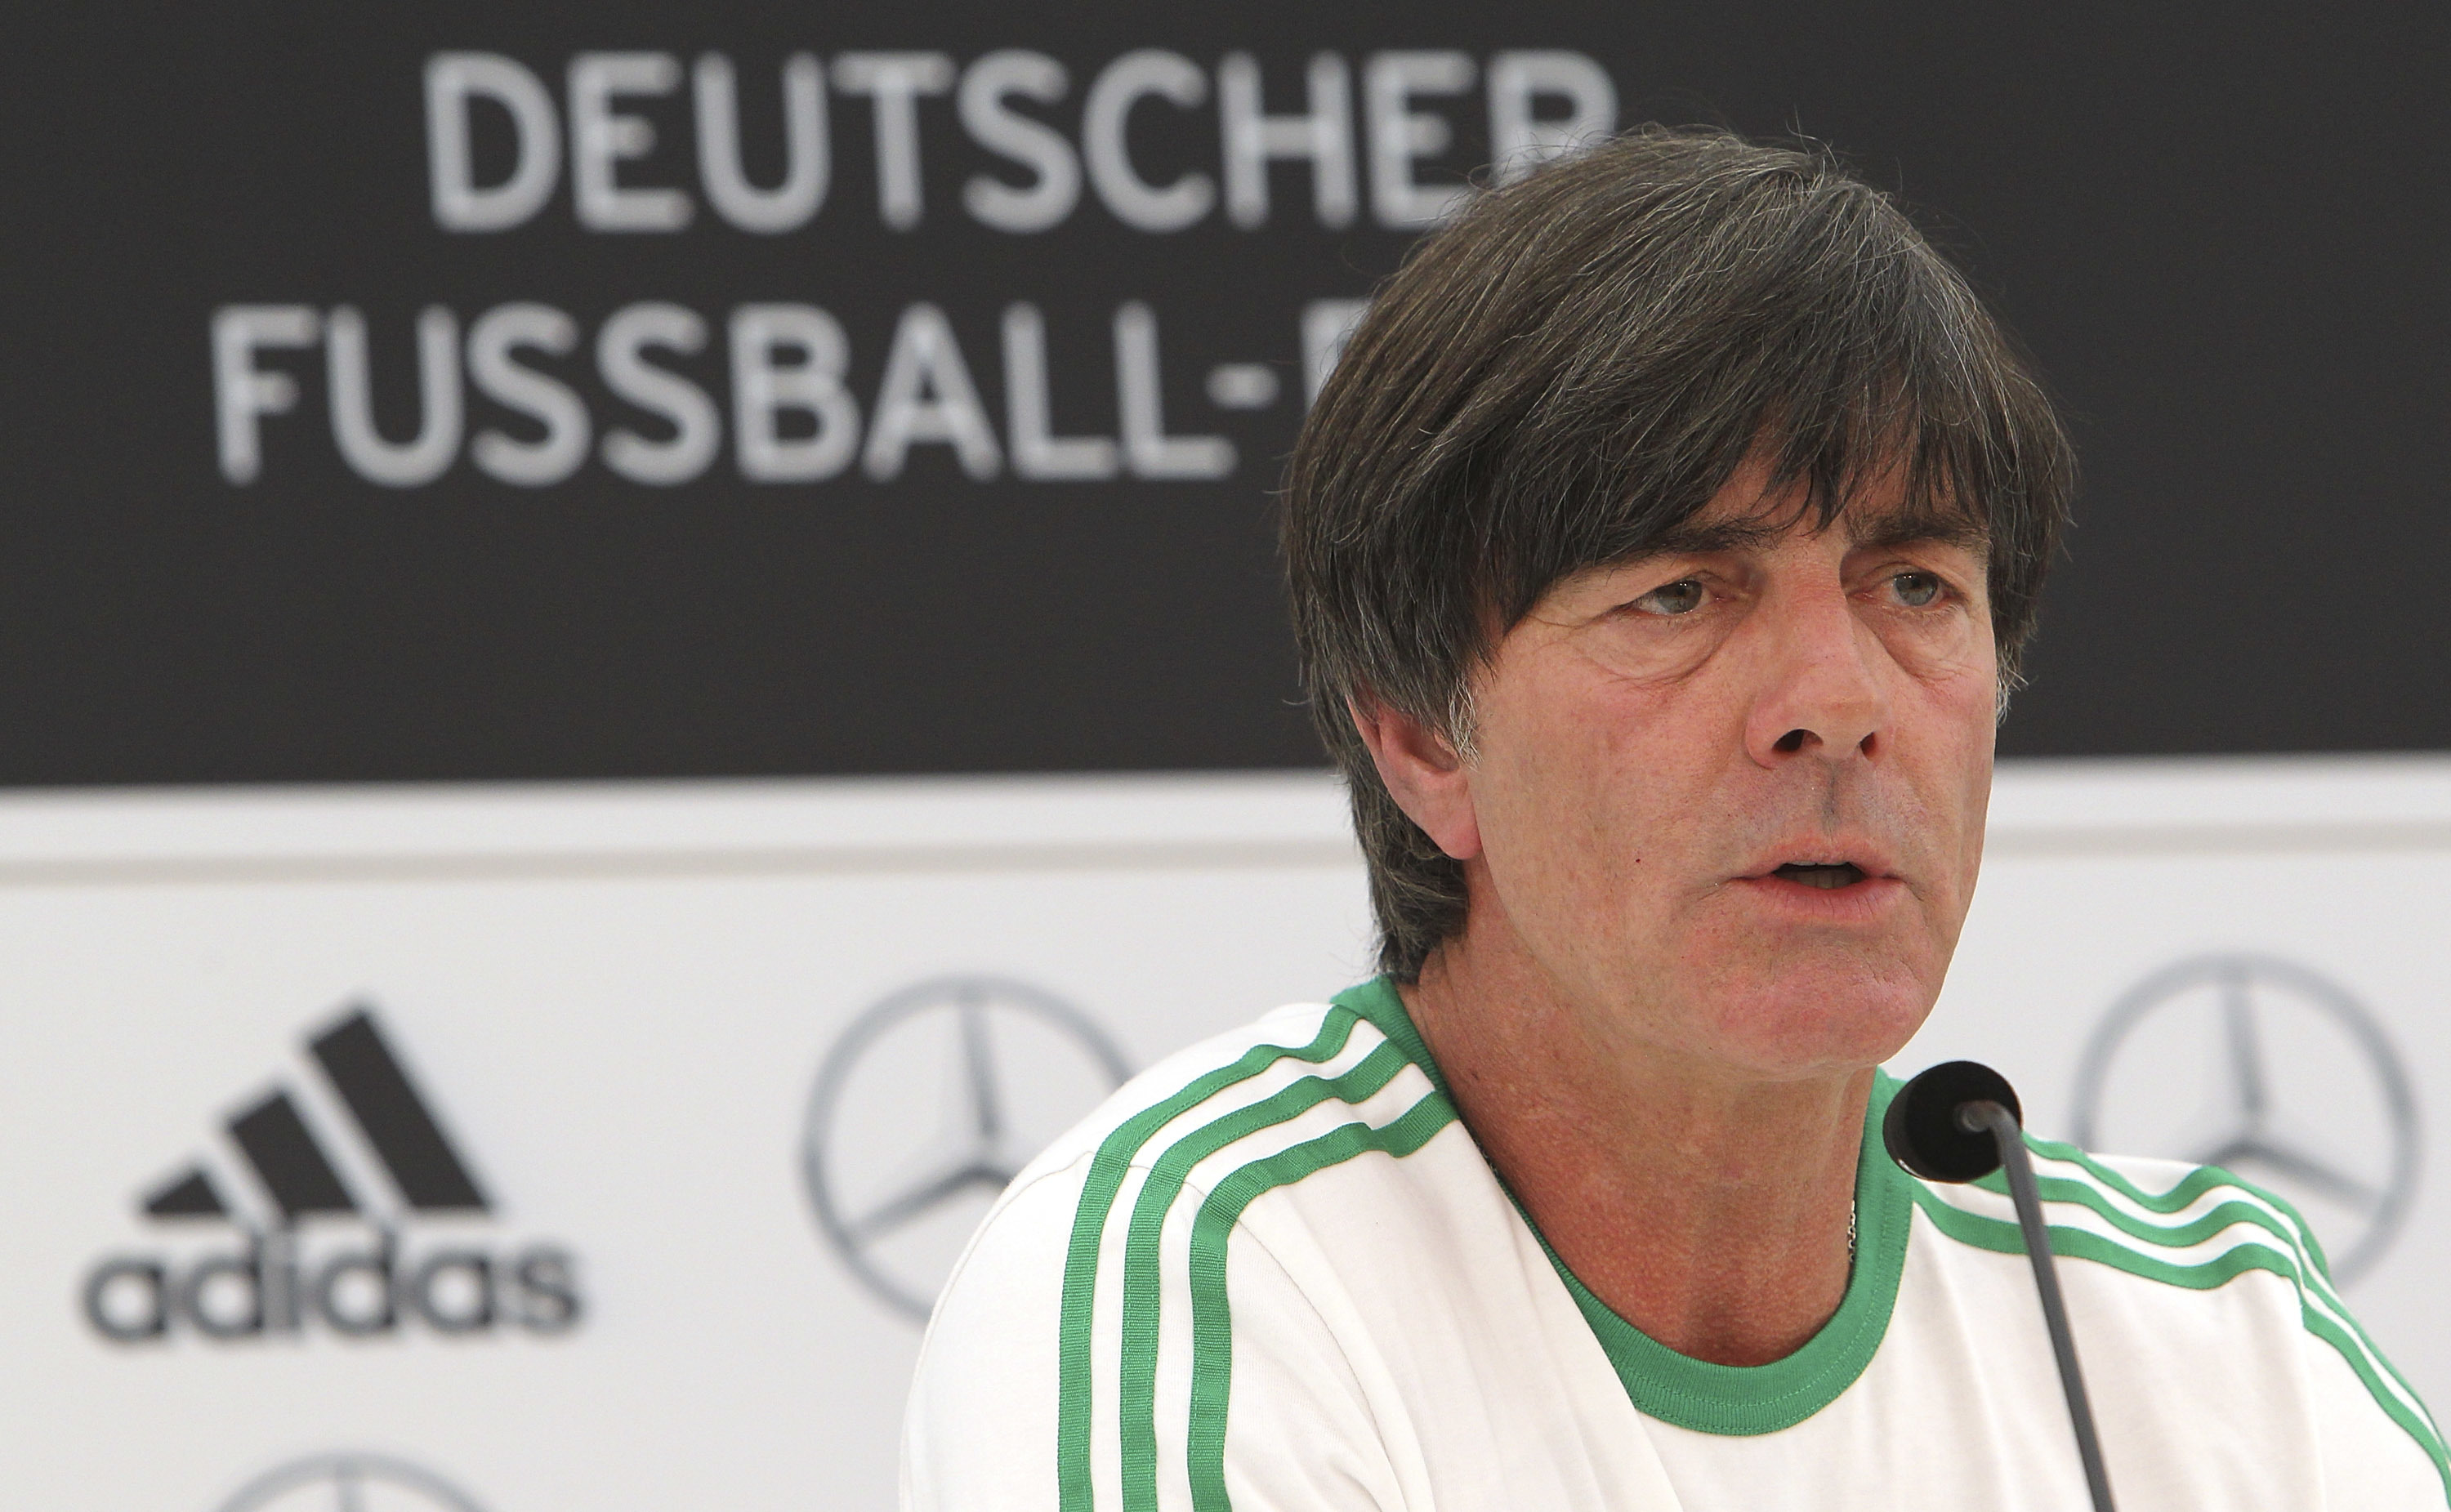 Germany coach Joachim Low (Marco Luzzani/Bongarts/Getty Images)